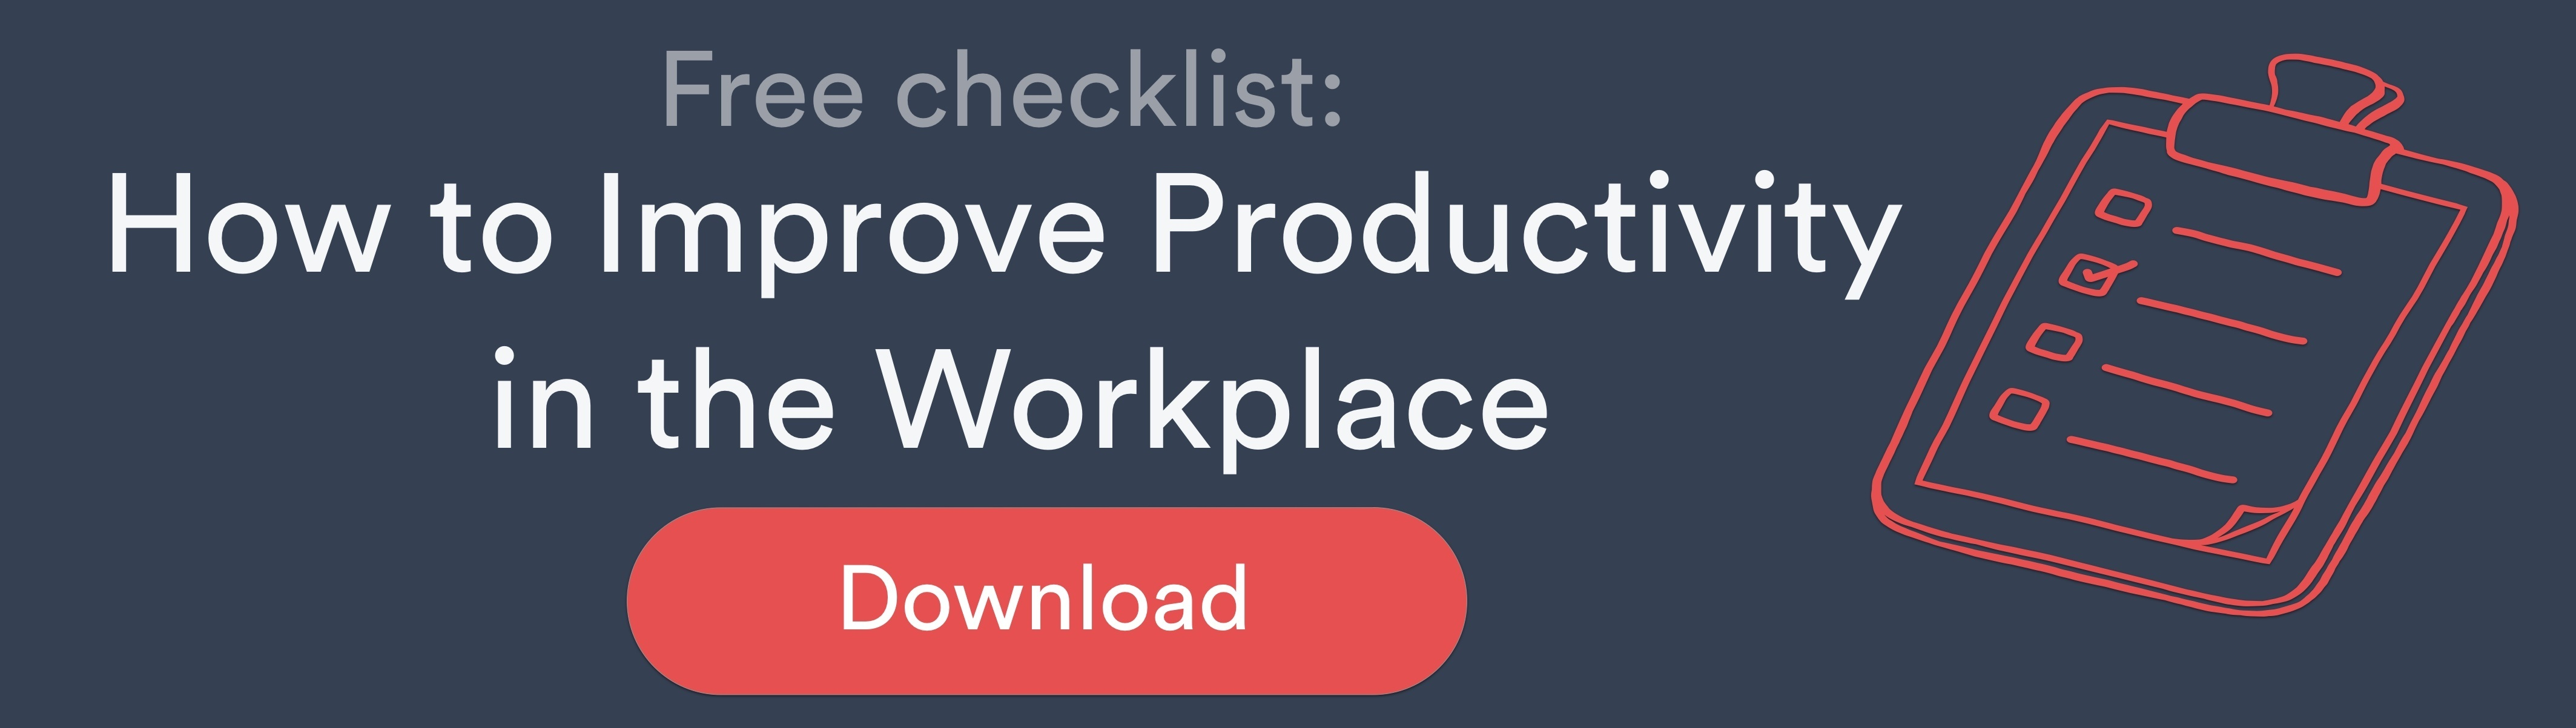 How to improve productivity in the workplace. Checklist